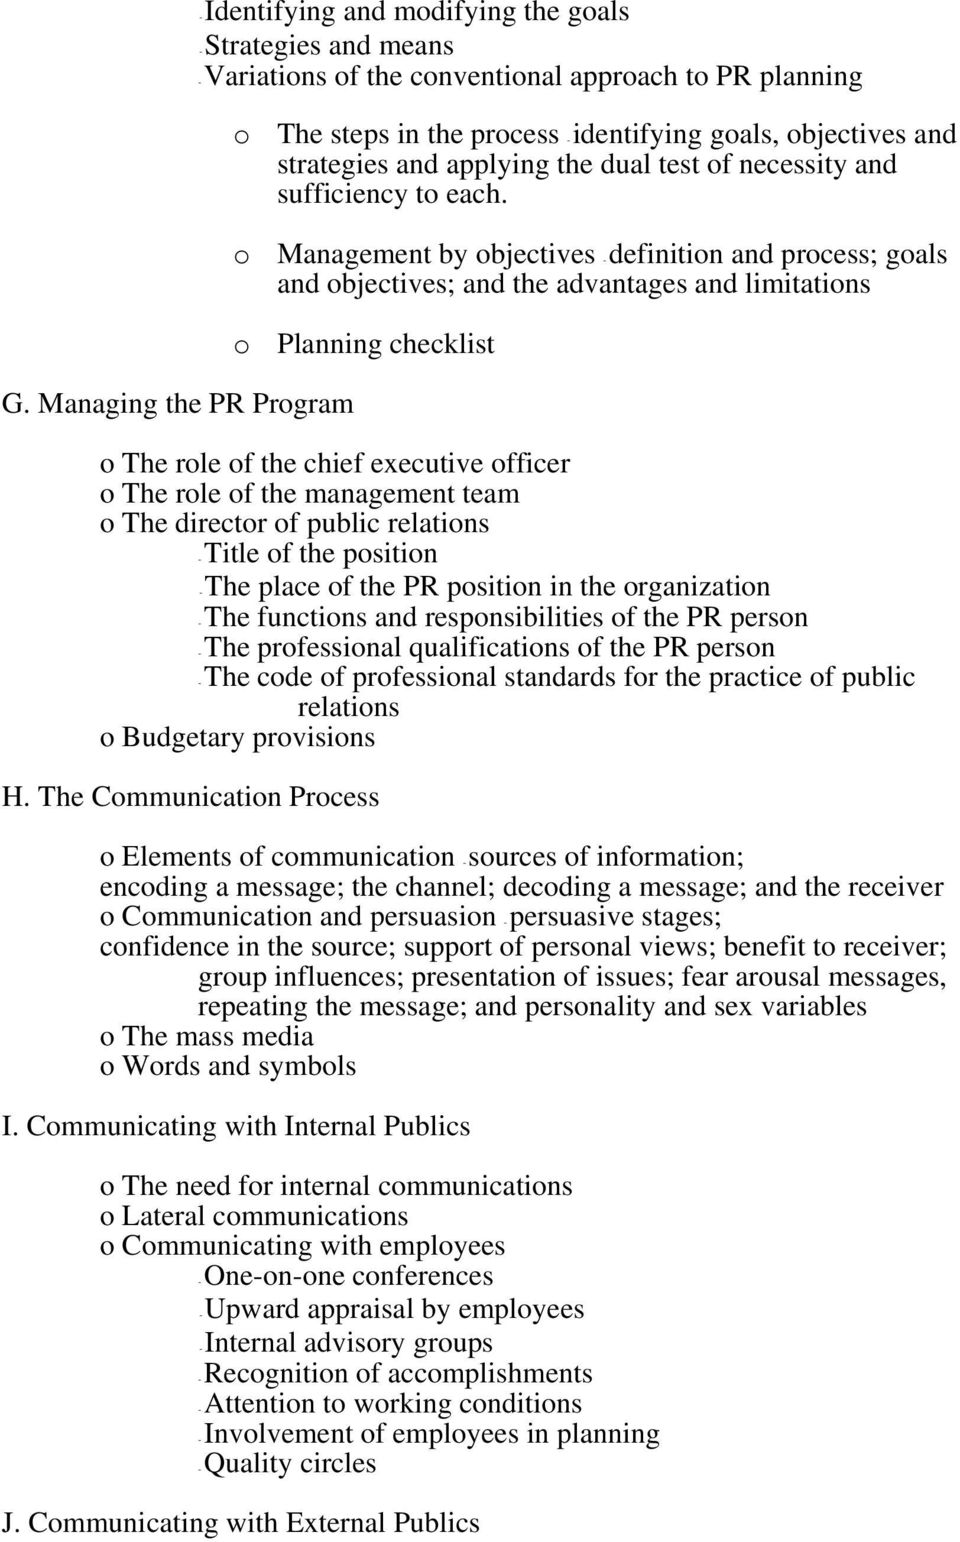 SYLLABUS FOR SCHOOL PUBLIC RELATIONS. A. To create an awareness and  eliminate any misunderstanding of what public relations actually is. - PDF  Free Download